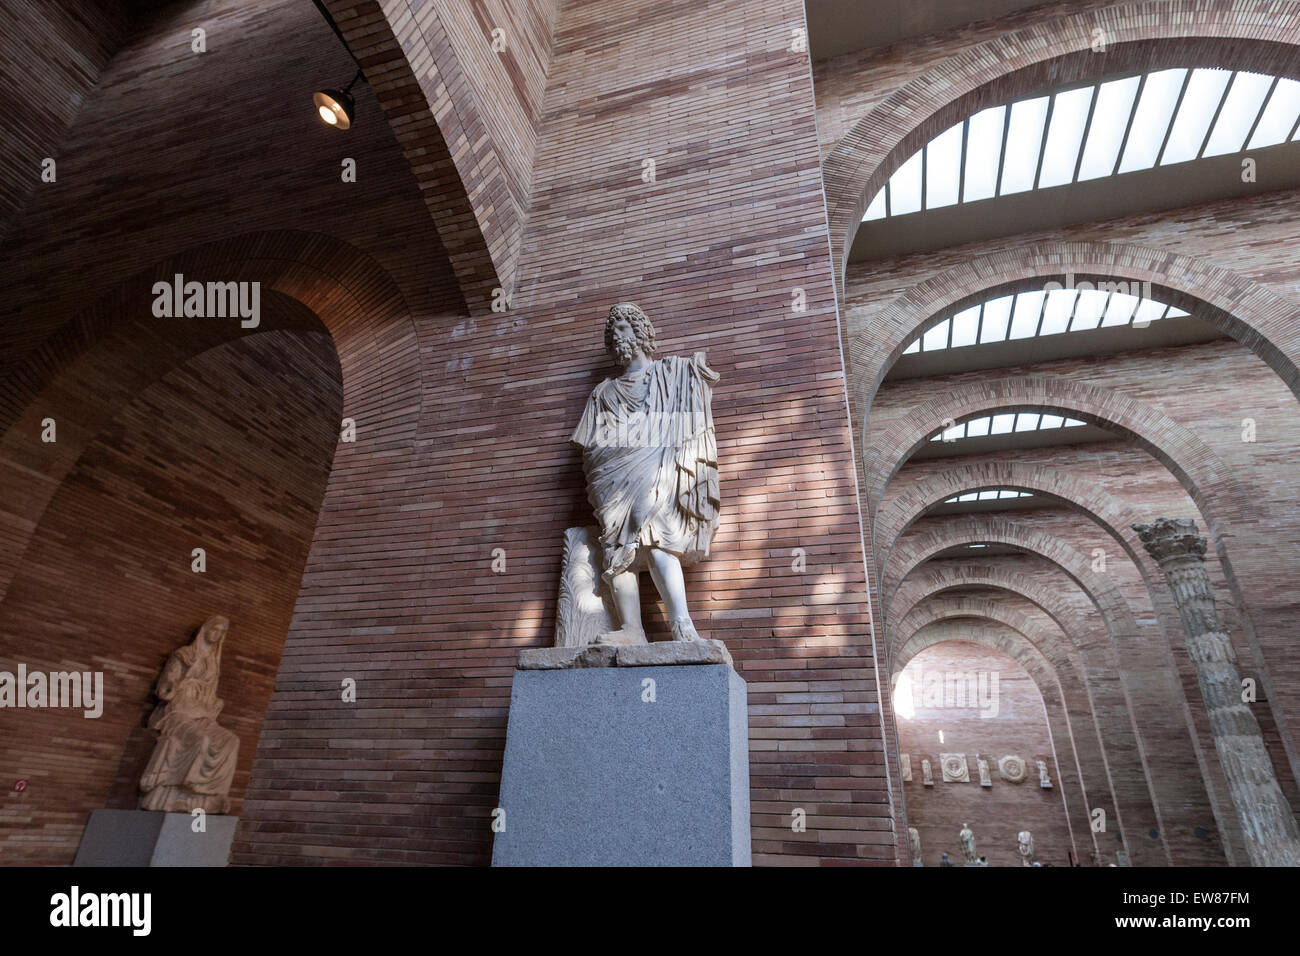 Arte Romano En Navarra Rafael Moneo Stock Photos Rafael Moneo Stock Images Alamy